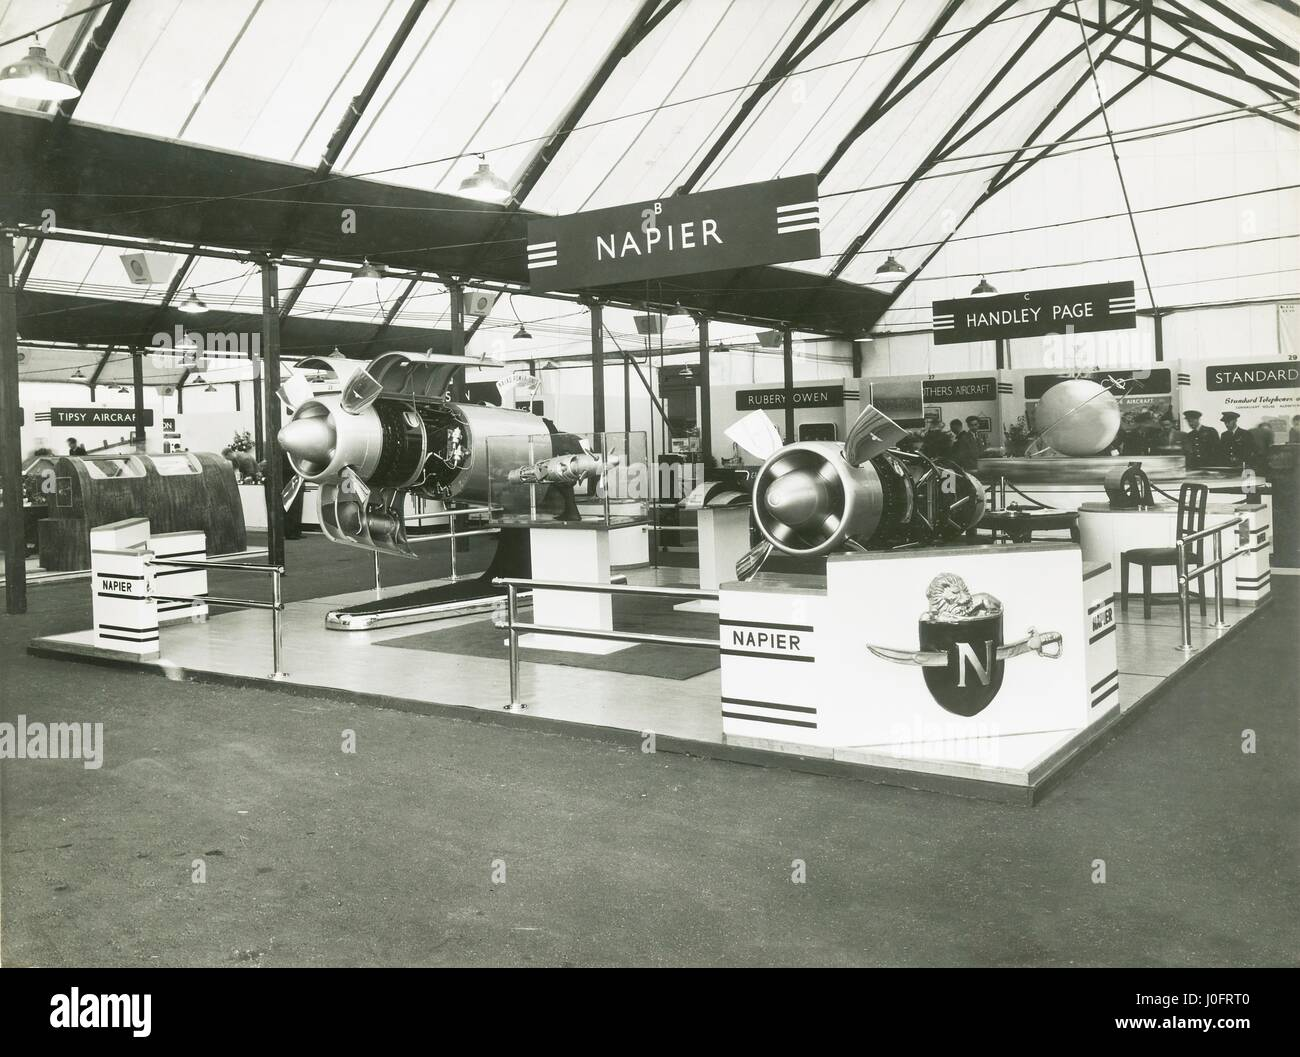 Naiad turboprop engine on display at the Napier stand, Radlett Air Show, 1948 - Stock Image